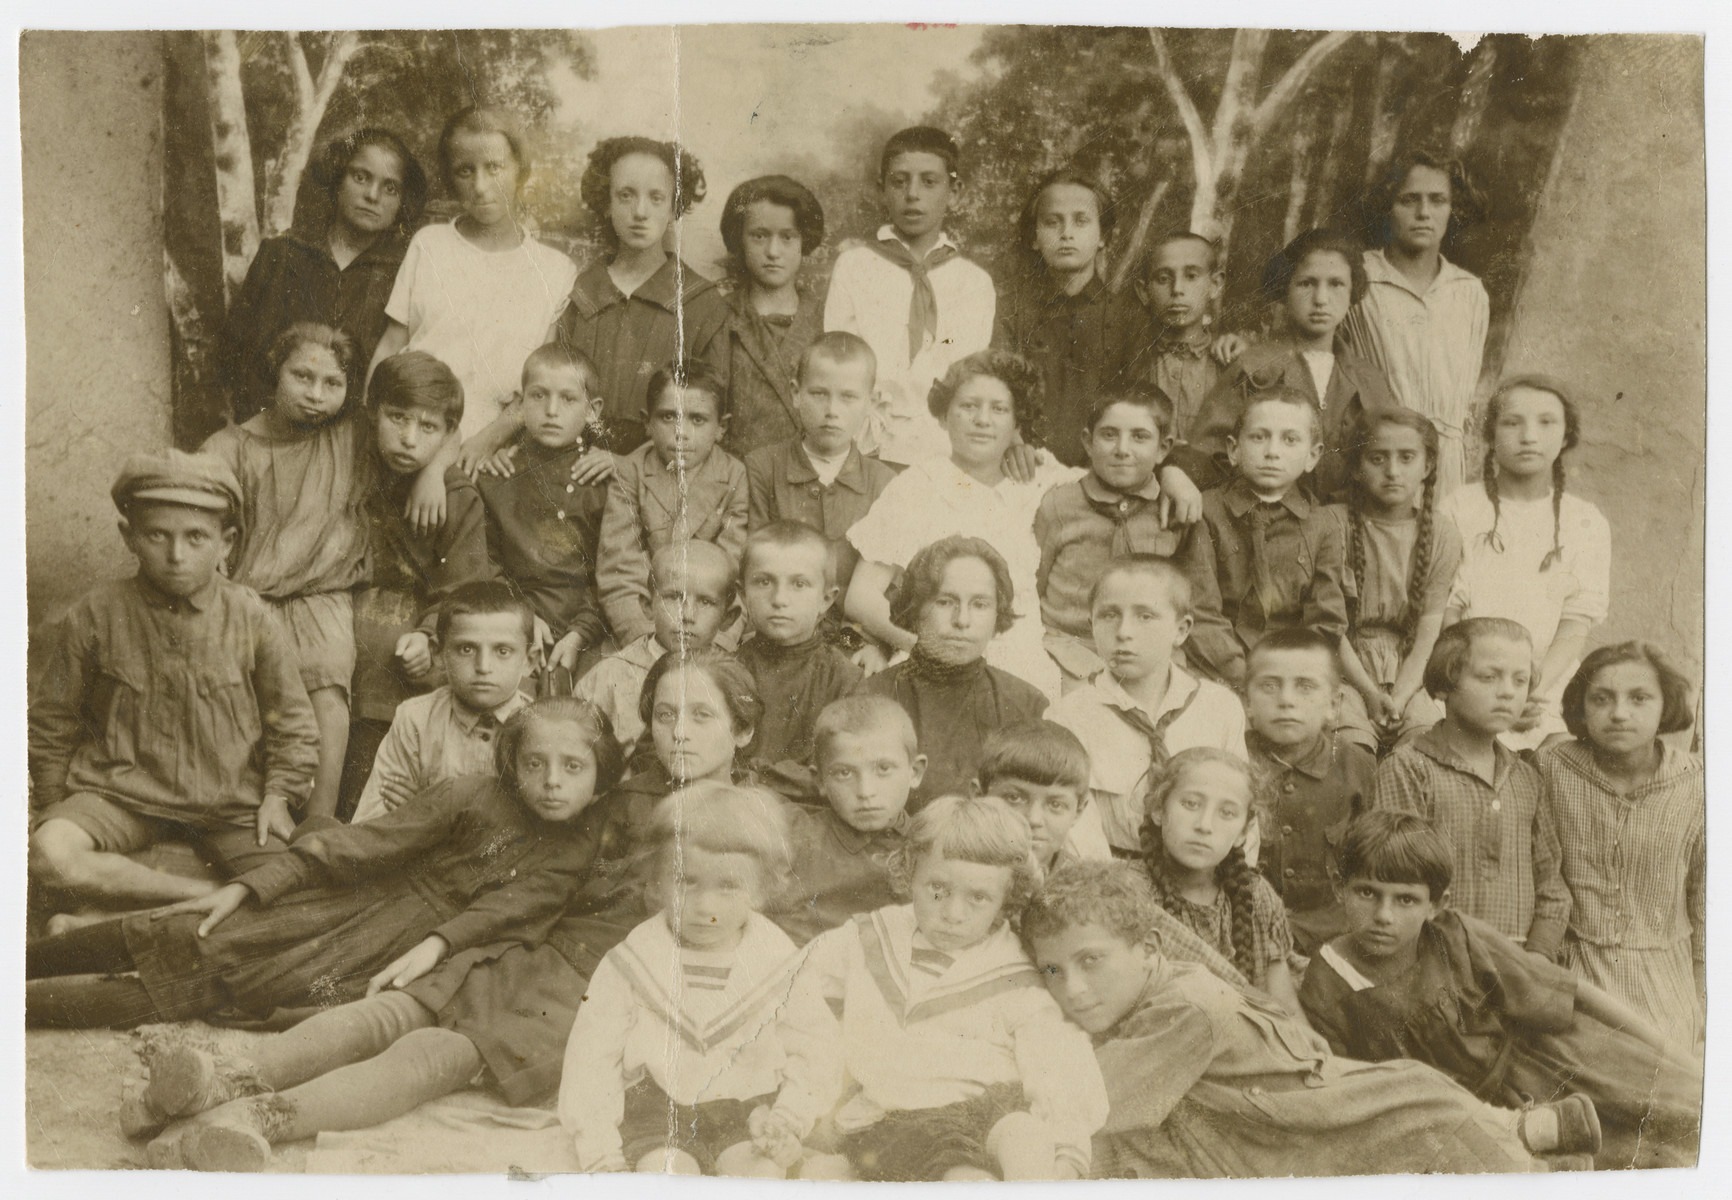 Group portrait of Jewish youth from Orinin, USSR.  The original caption reads: No survivors.